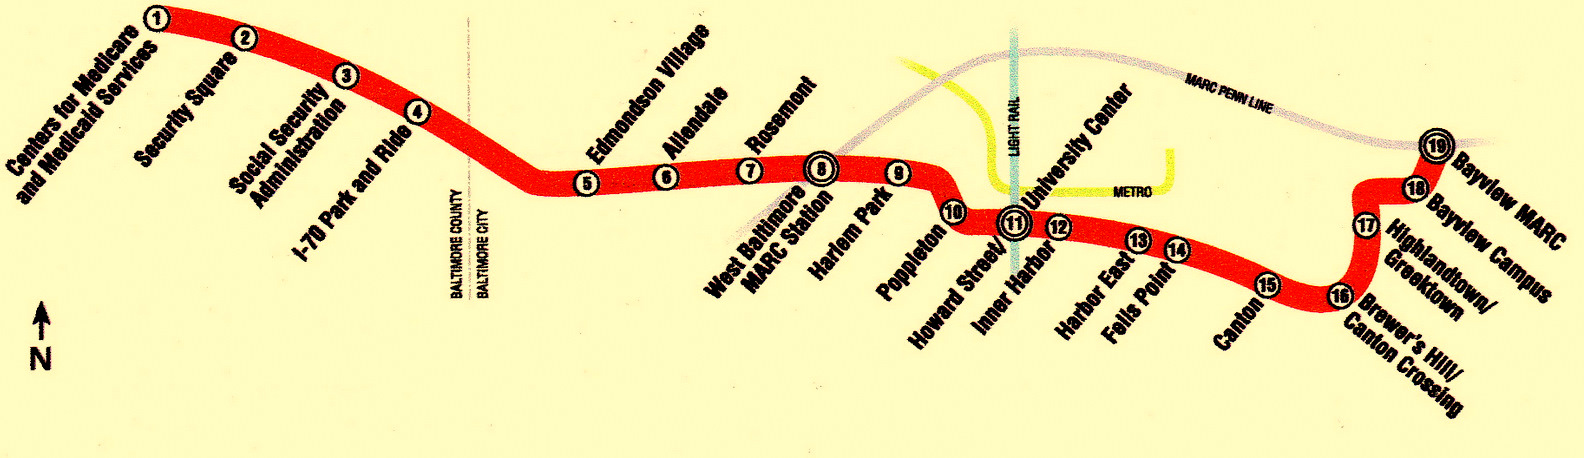 The proposed Red Line between Woodlawn and Bayview would have 19 stations and 26 rail cars. (Maryland Transit Administration)